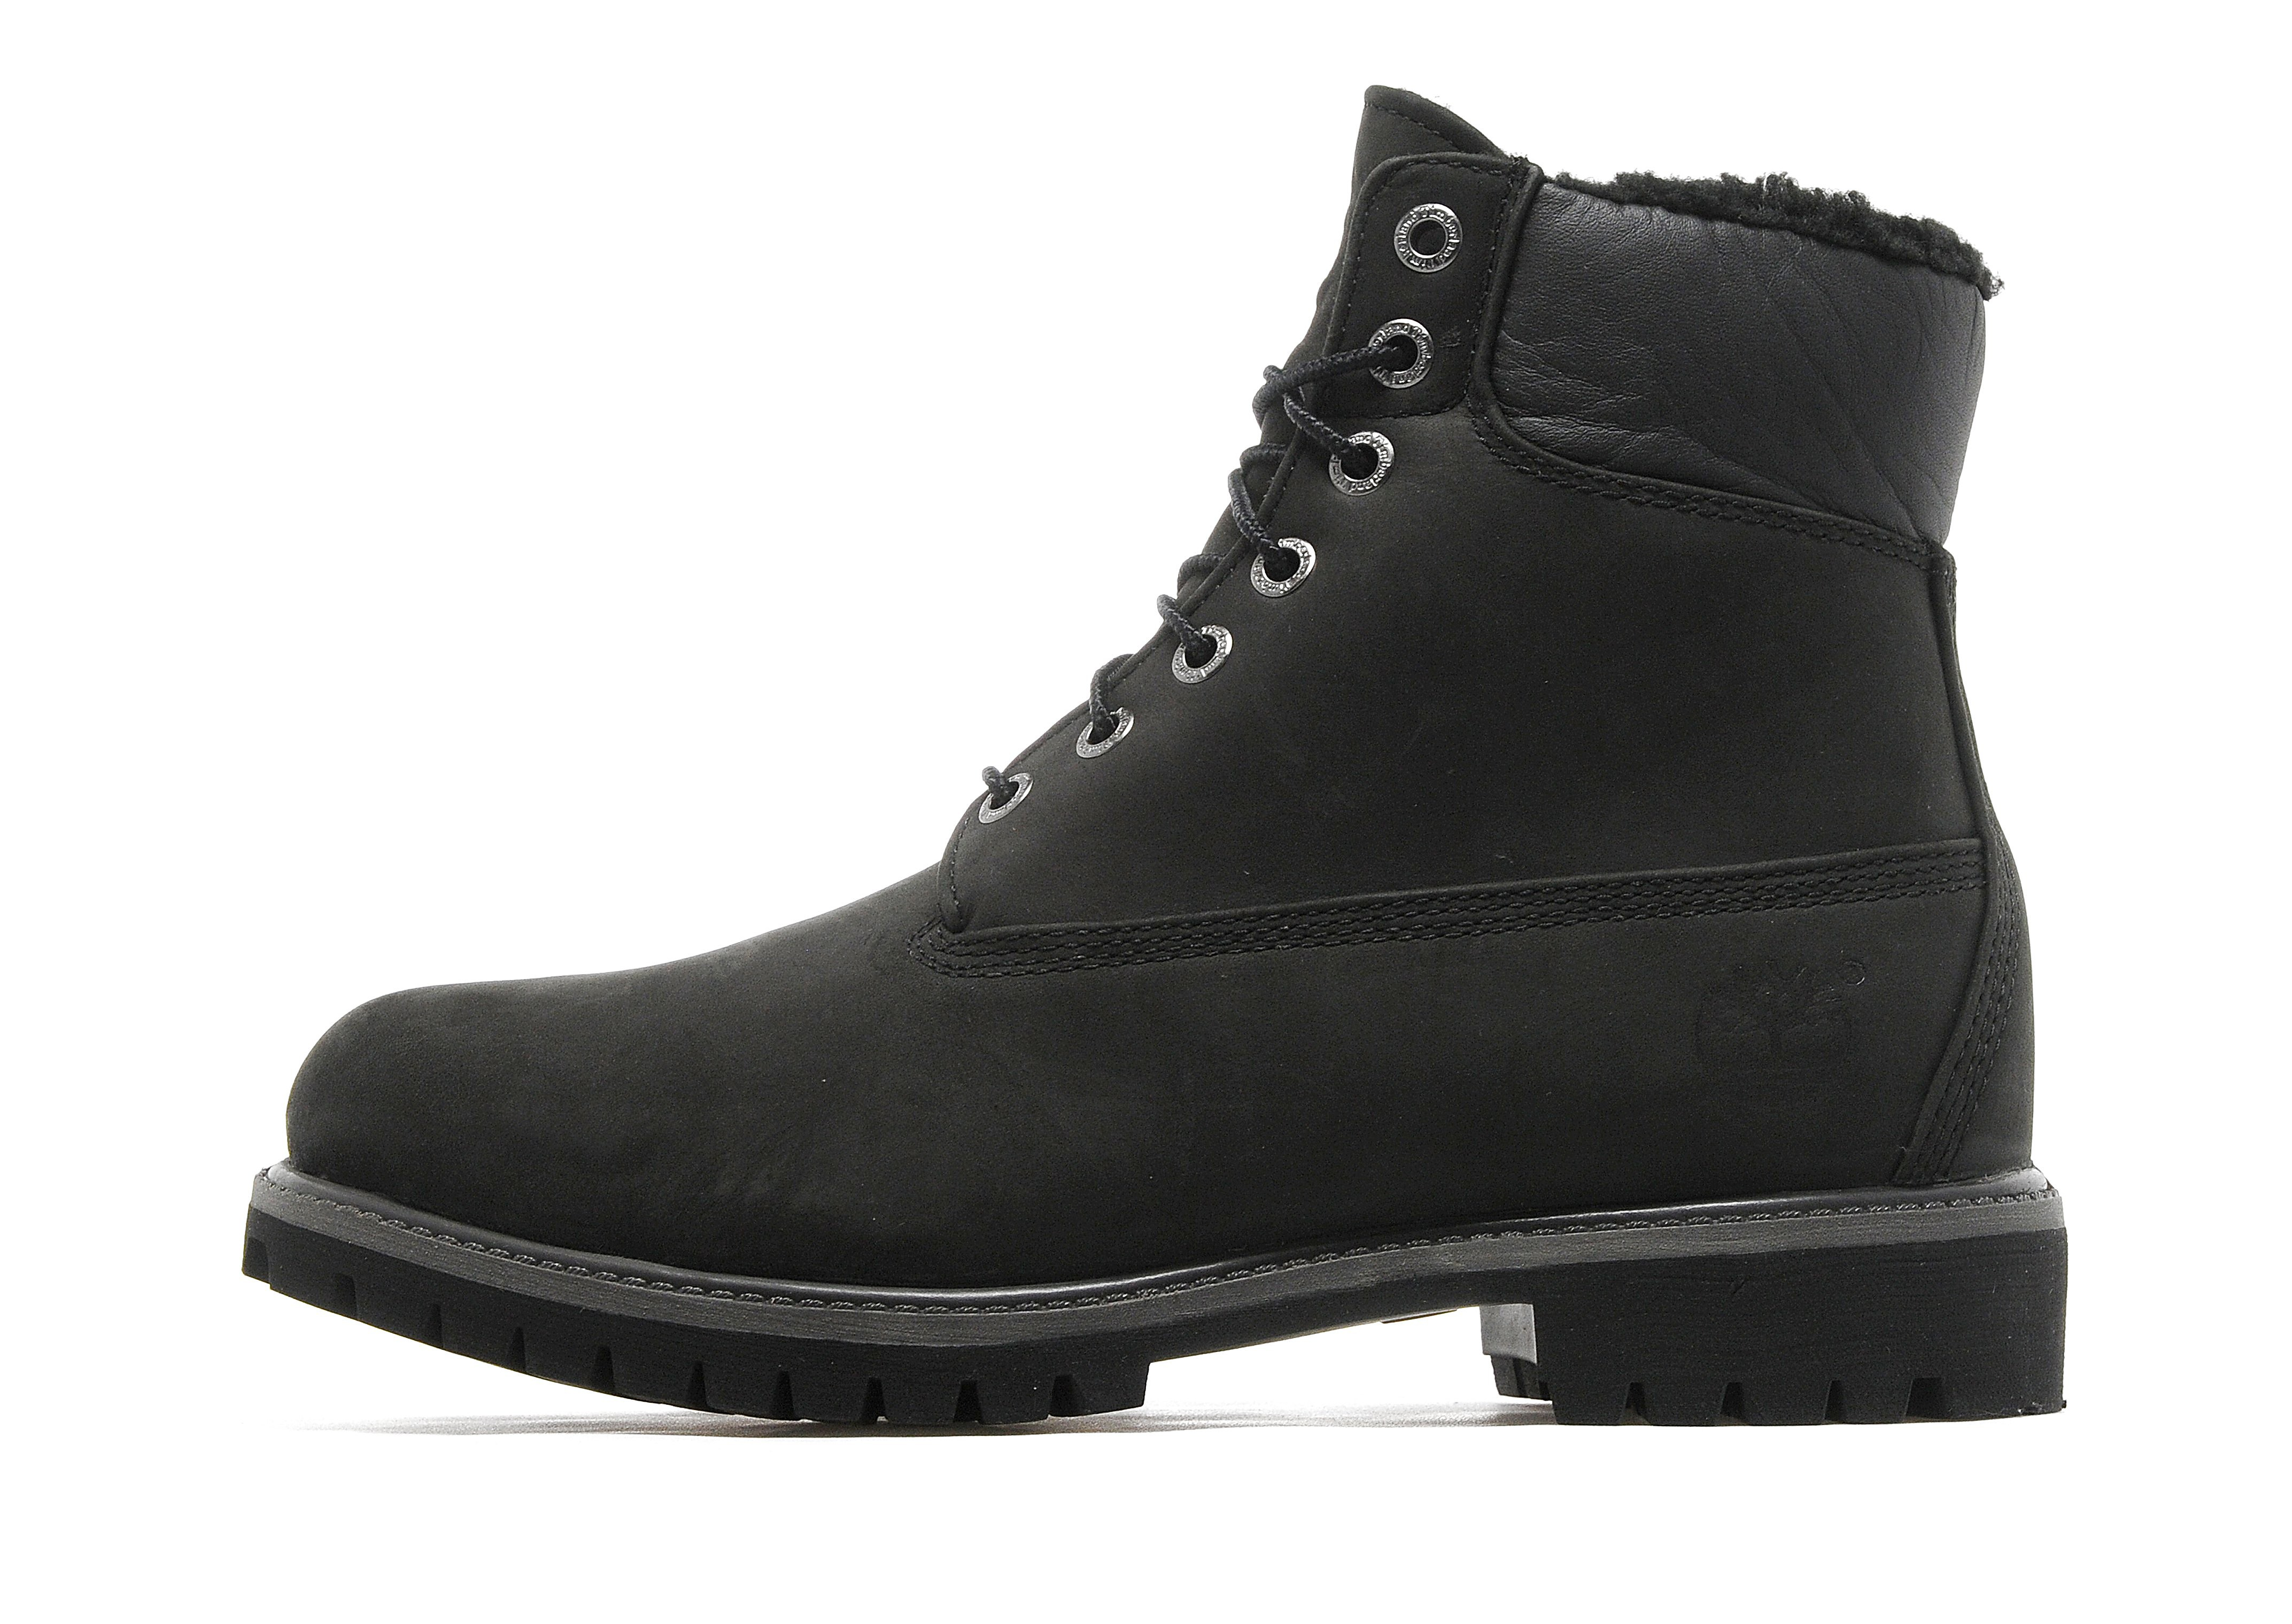 Timberland Heritage 6-Inch Shearling Lined